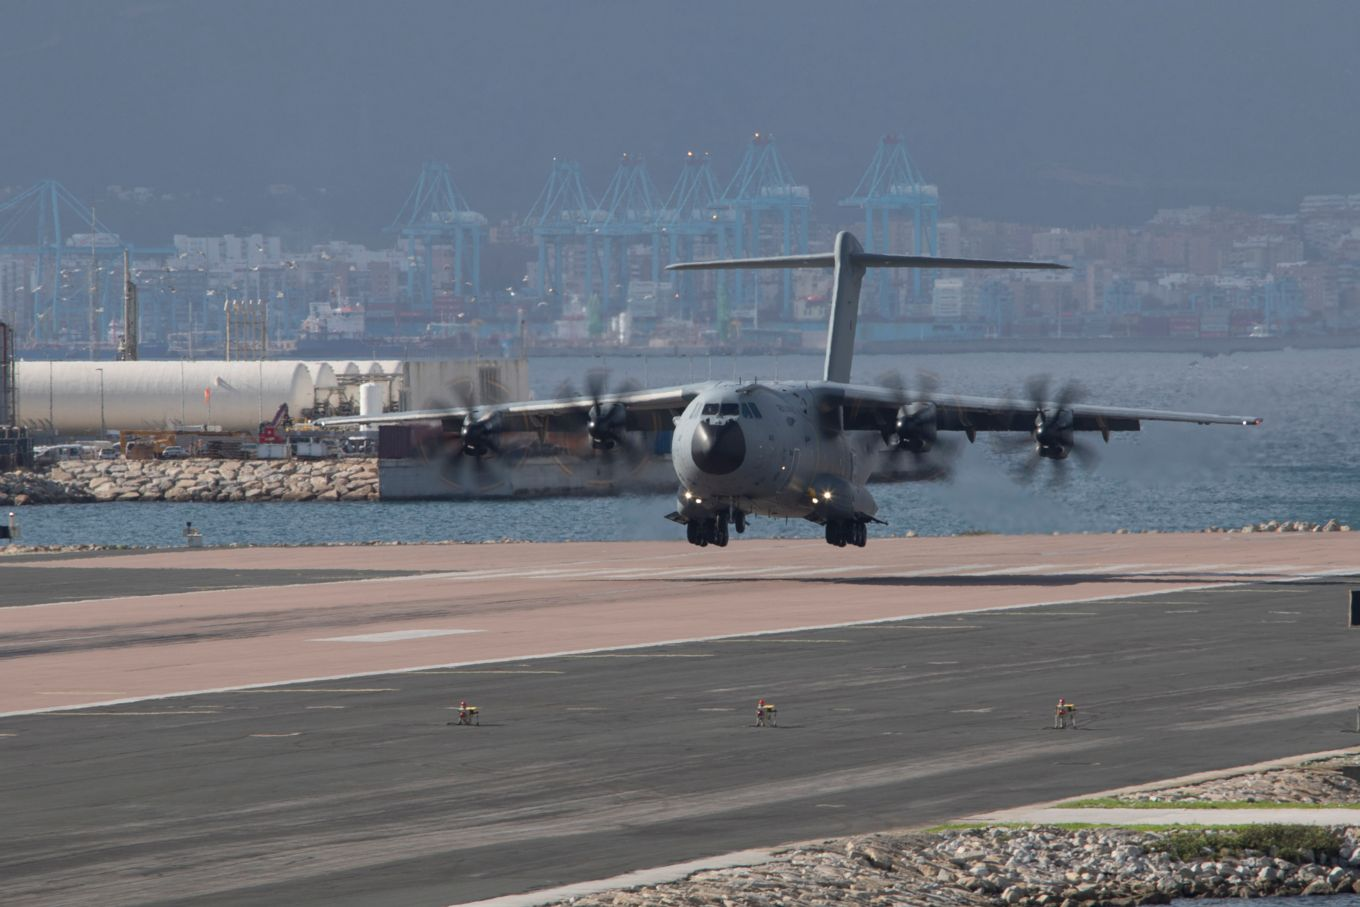 Image shows an RAF A400M aircraft touching down.